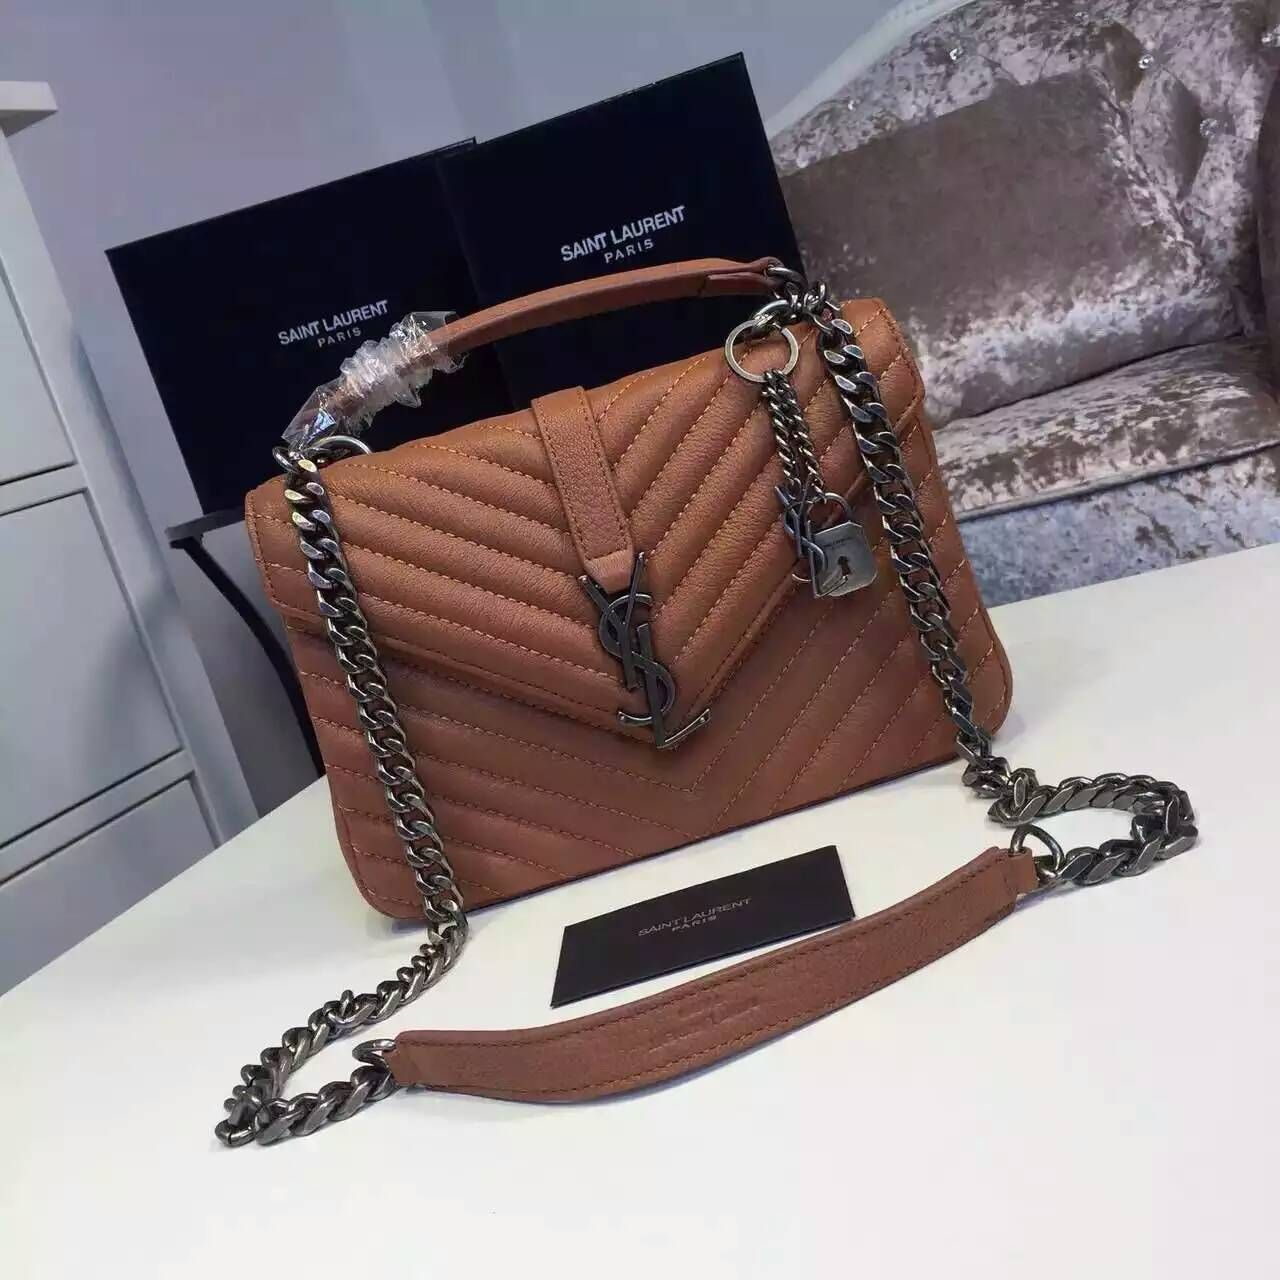 6f1843e19813 ... matelasse leather chain wallet beige ysl bag price in paris .